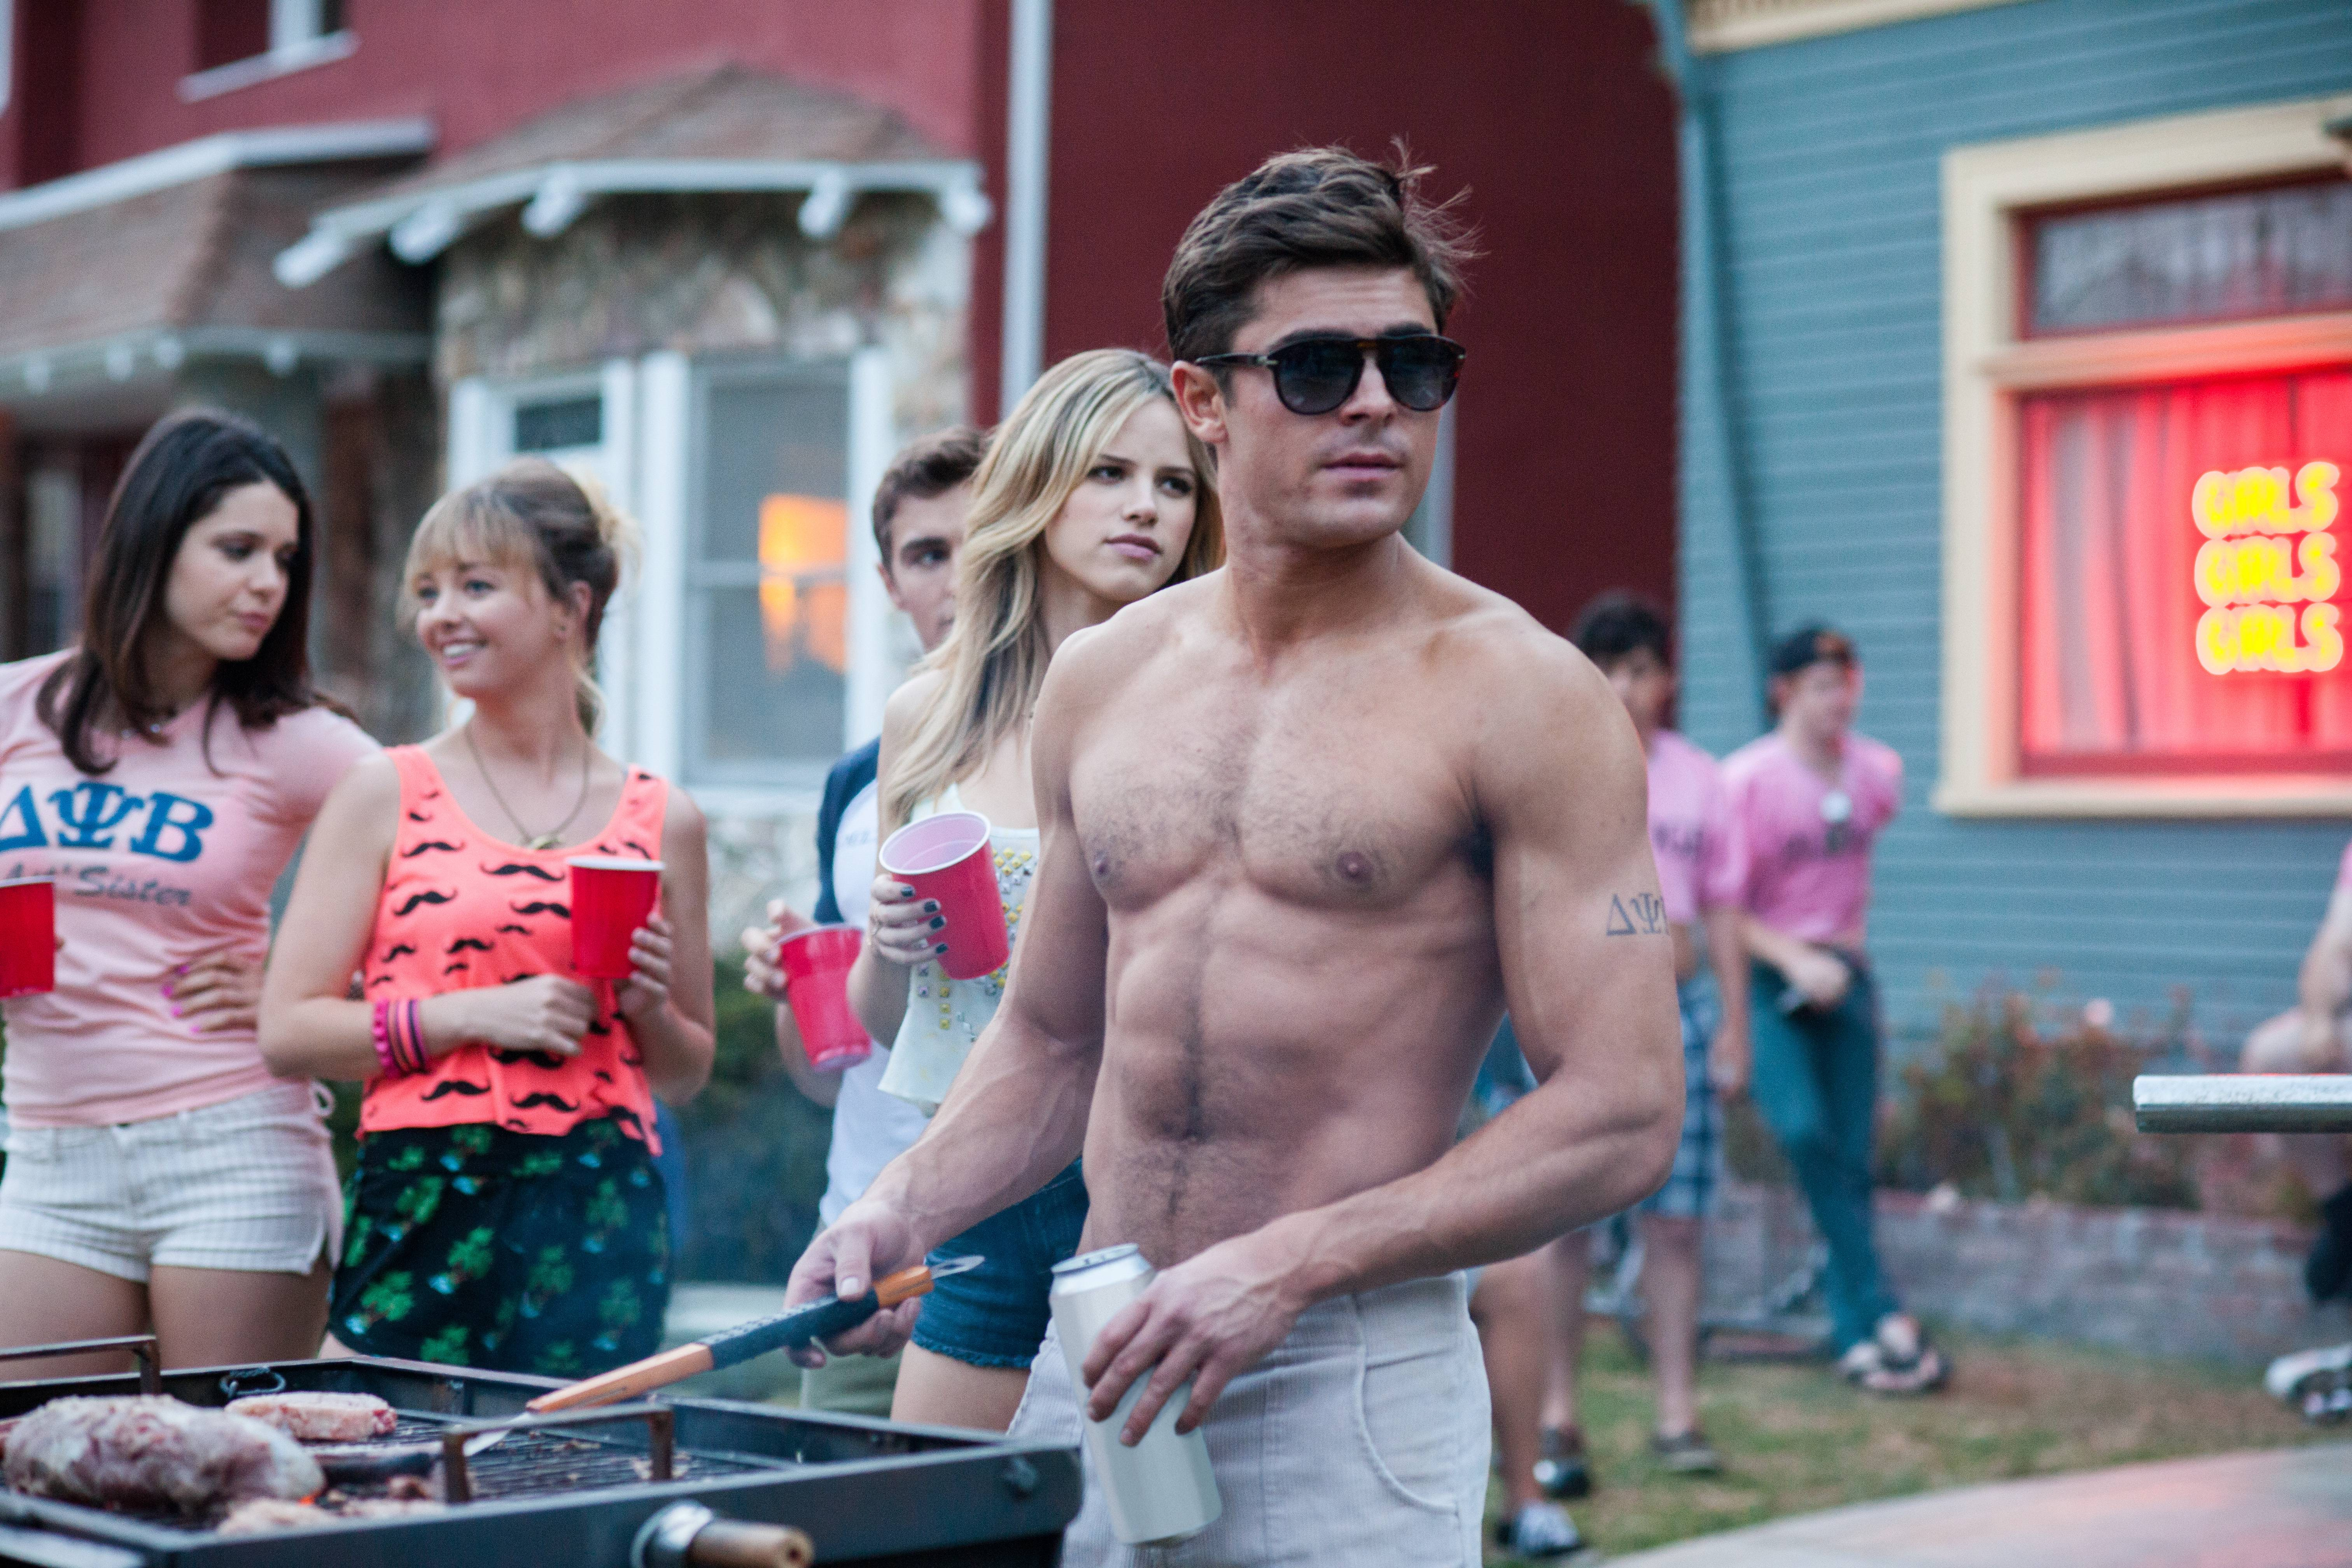 "In the upcoming months, charming indies and raunchy comedies, like ""Neighbors"" starring Zac Efron, will appeal to those looking for films that reflect their own lives."